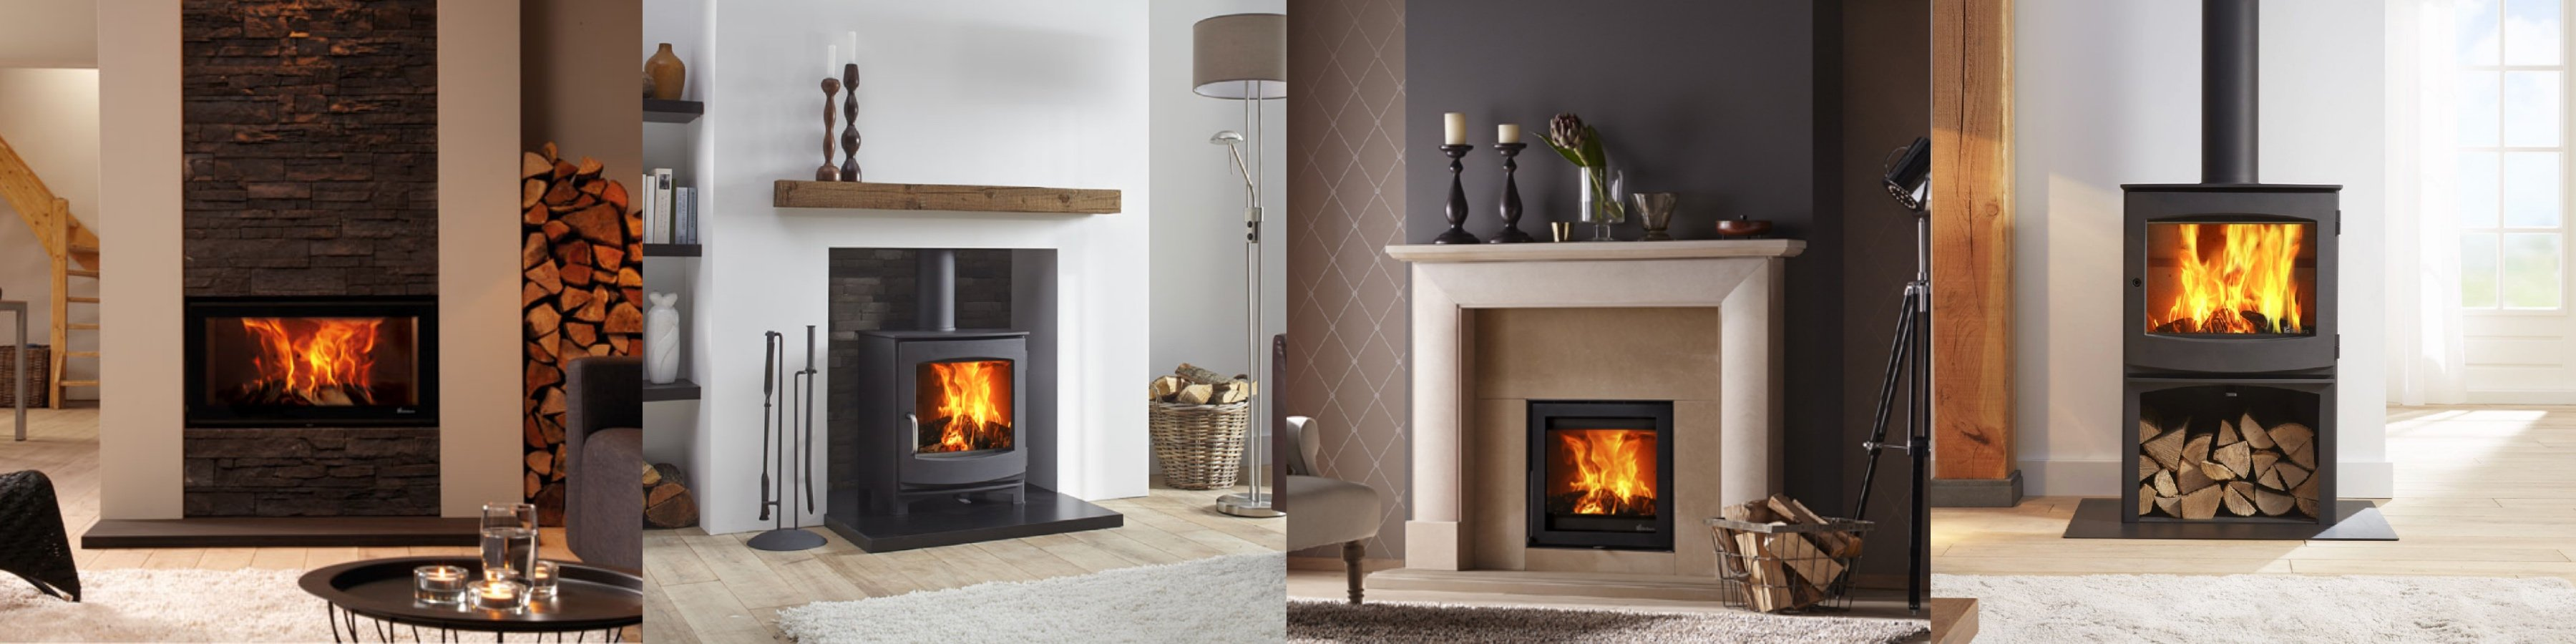 fireplaces u0026 stoves in carlisle from crown fireplace centre